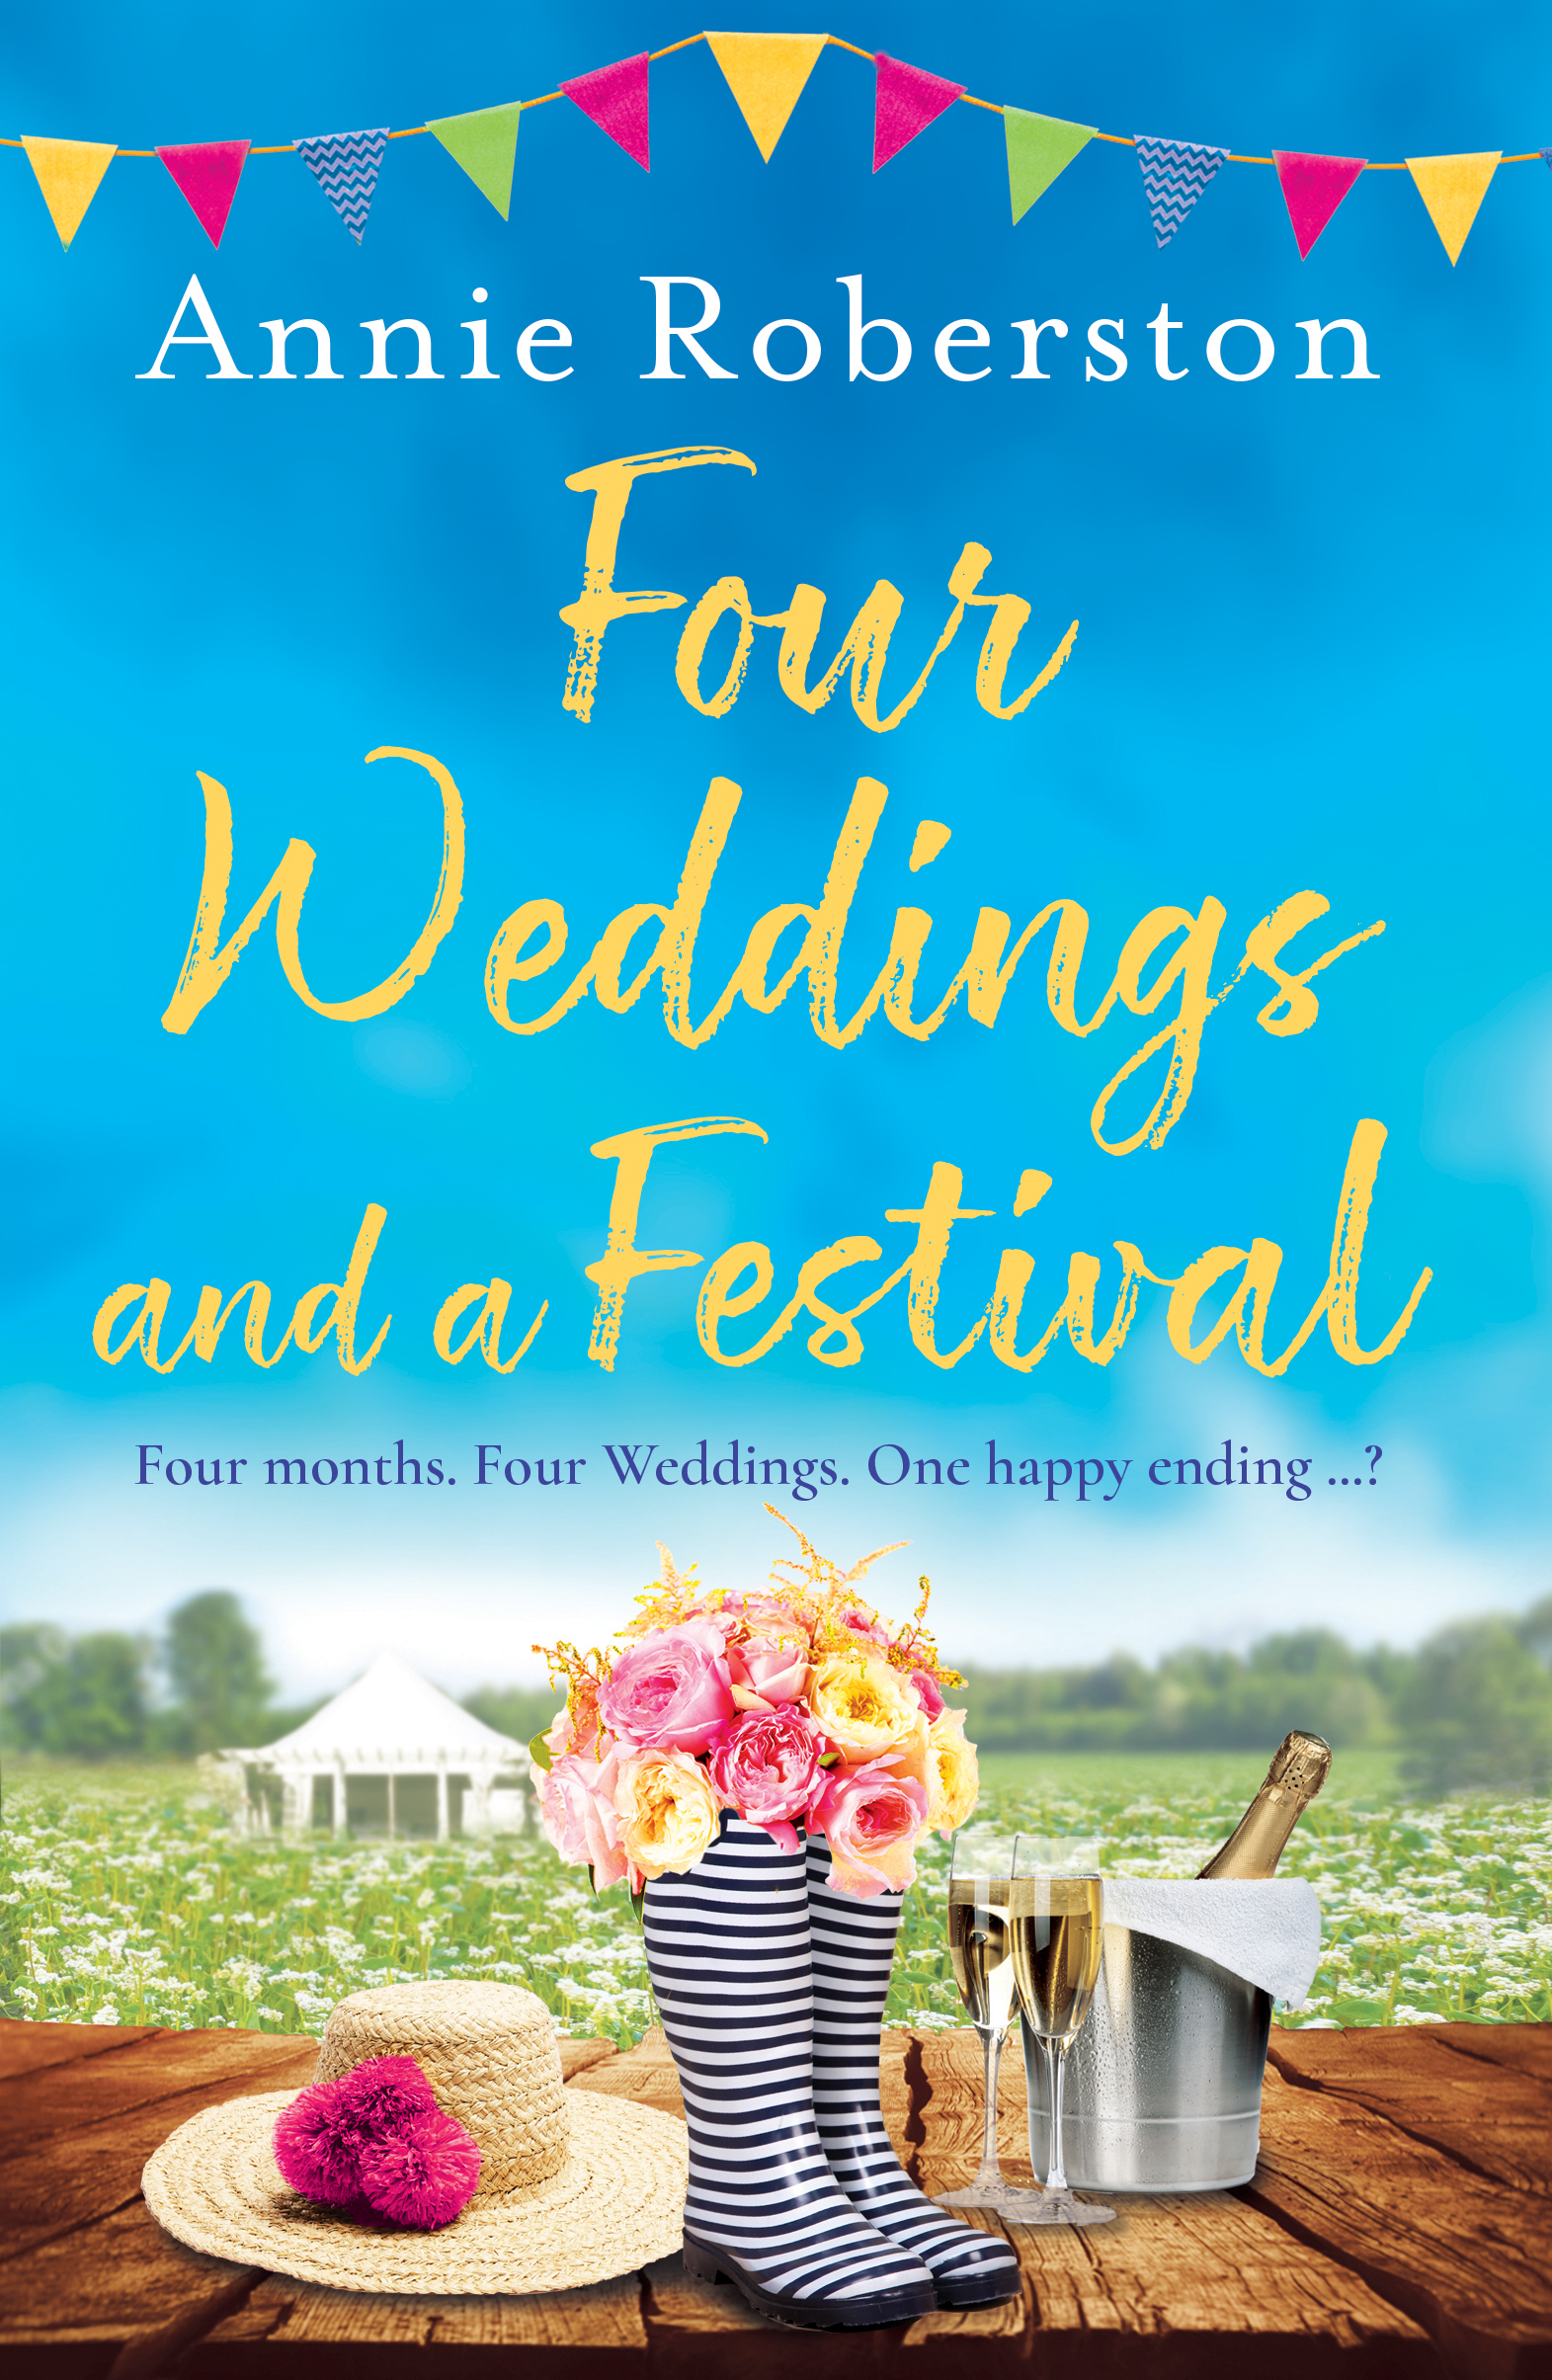 FOUR WEDDINGS AND A FESTIVAL  Contemporary, 320 pages Orion, July 2019   Bea, Lizzie, Hannah  and  Kat  always joked about getting married in the same year: their own 'Four Weddings' romance. Lifelong romcom fans, they've curled up with  Bridget Jones , sobbed at  Love, Actually , and quoted the script to  Notting Hill  more times than they can count. And now, after a flurry of engagements, it seems the Four Weddings summer has finally arrived.  But  Bea  isn't so sure - after all, her poky flatshare is pretty far from a Notting Hill mews, and her long-term boyfriend Simon isn't exactly leading man material. When she turns down Simon's proposal, the rest of the gang are determined to find Bea her own Hugh Grant, by setting her up with a different date at every wedding...  As the cracks in their Richard Curtis dream begin to show, Bea is more and more certain that she  doesn't  want a big white wedding - especially as it seems that there might not be any happy-ever-afters this year, let alone  four ...